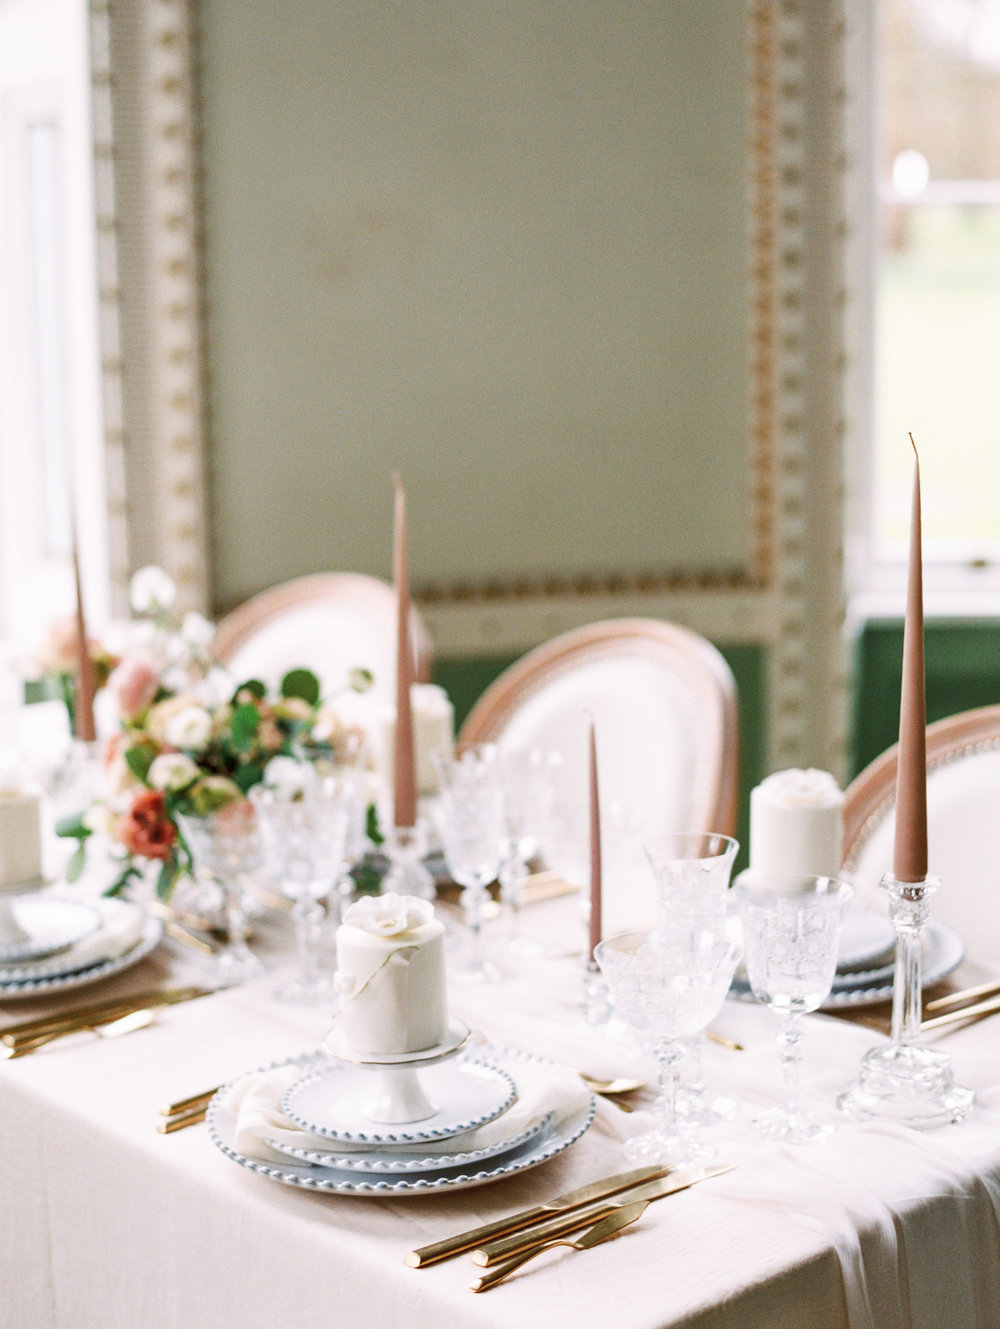 The Timeless Stylist-Elegant and Romantic Wedding Styling-Neutral Palette Wedding Tablescape-Tapered Candles